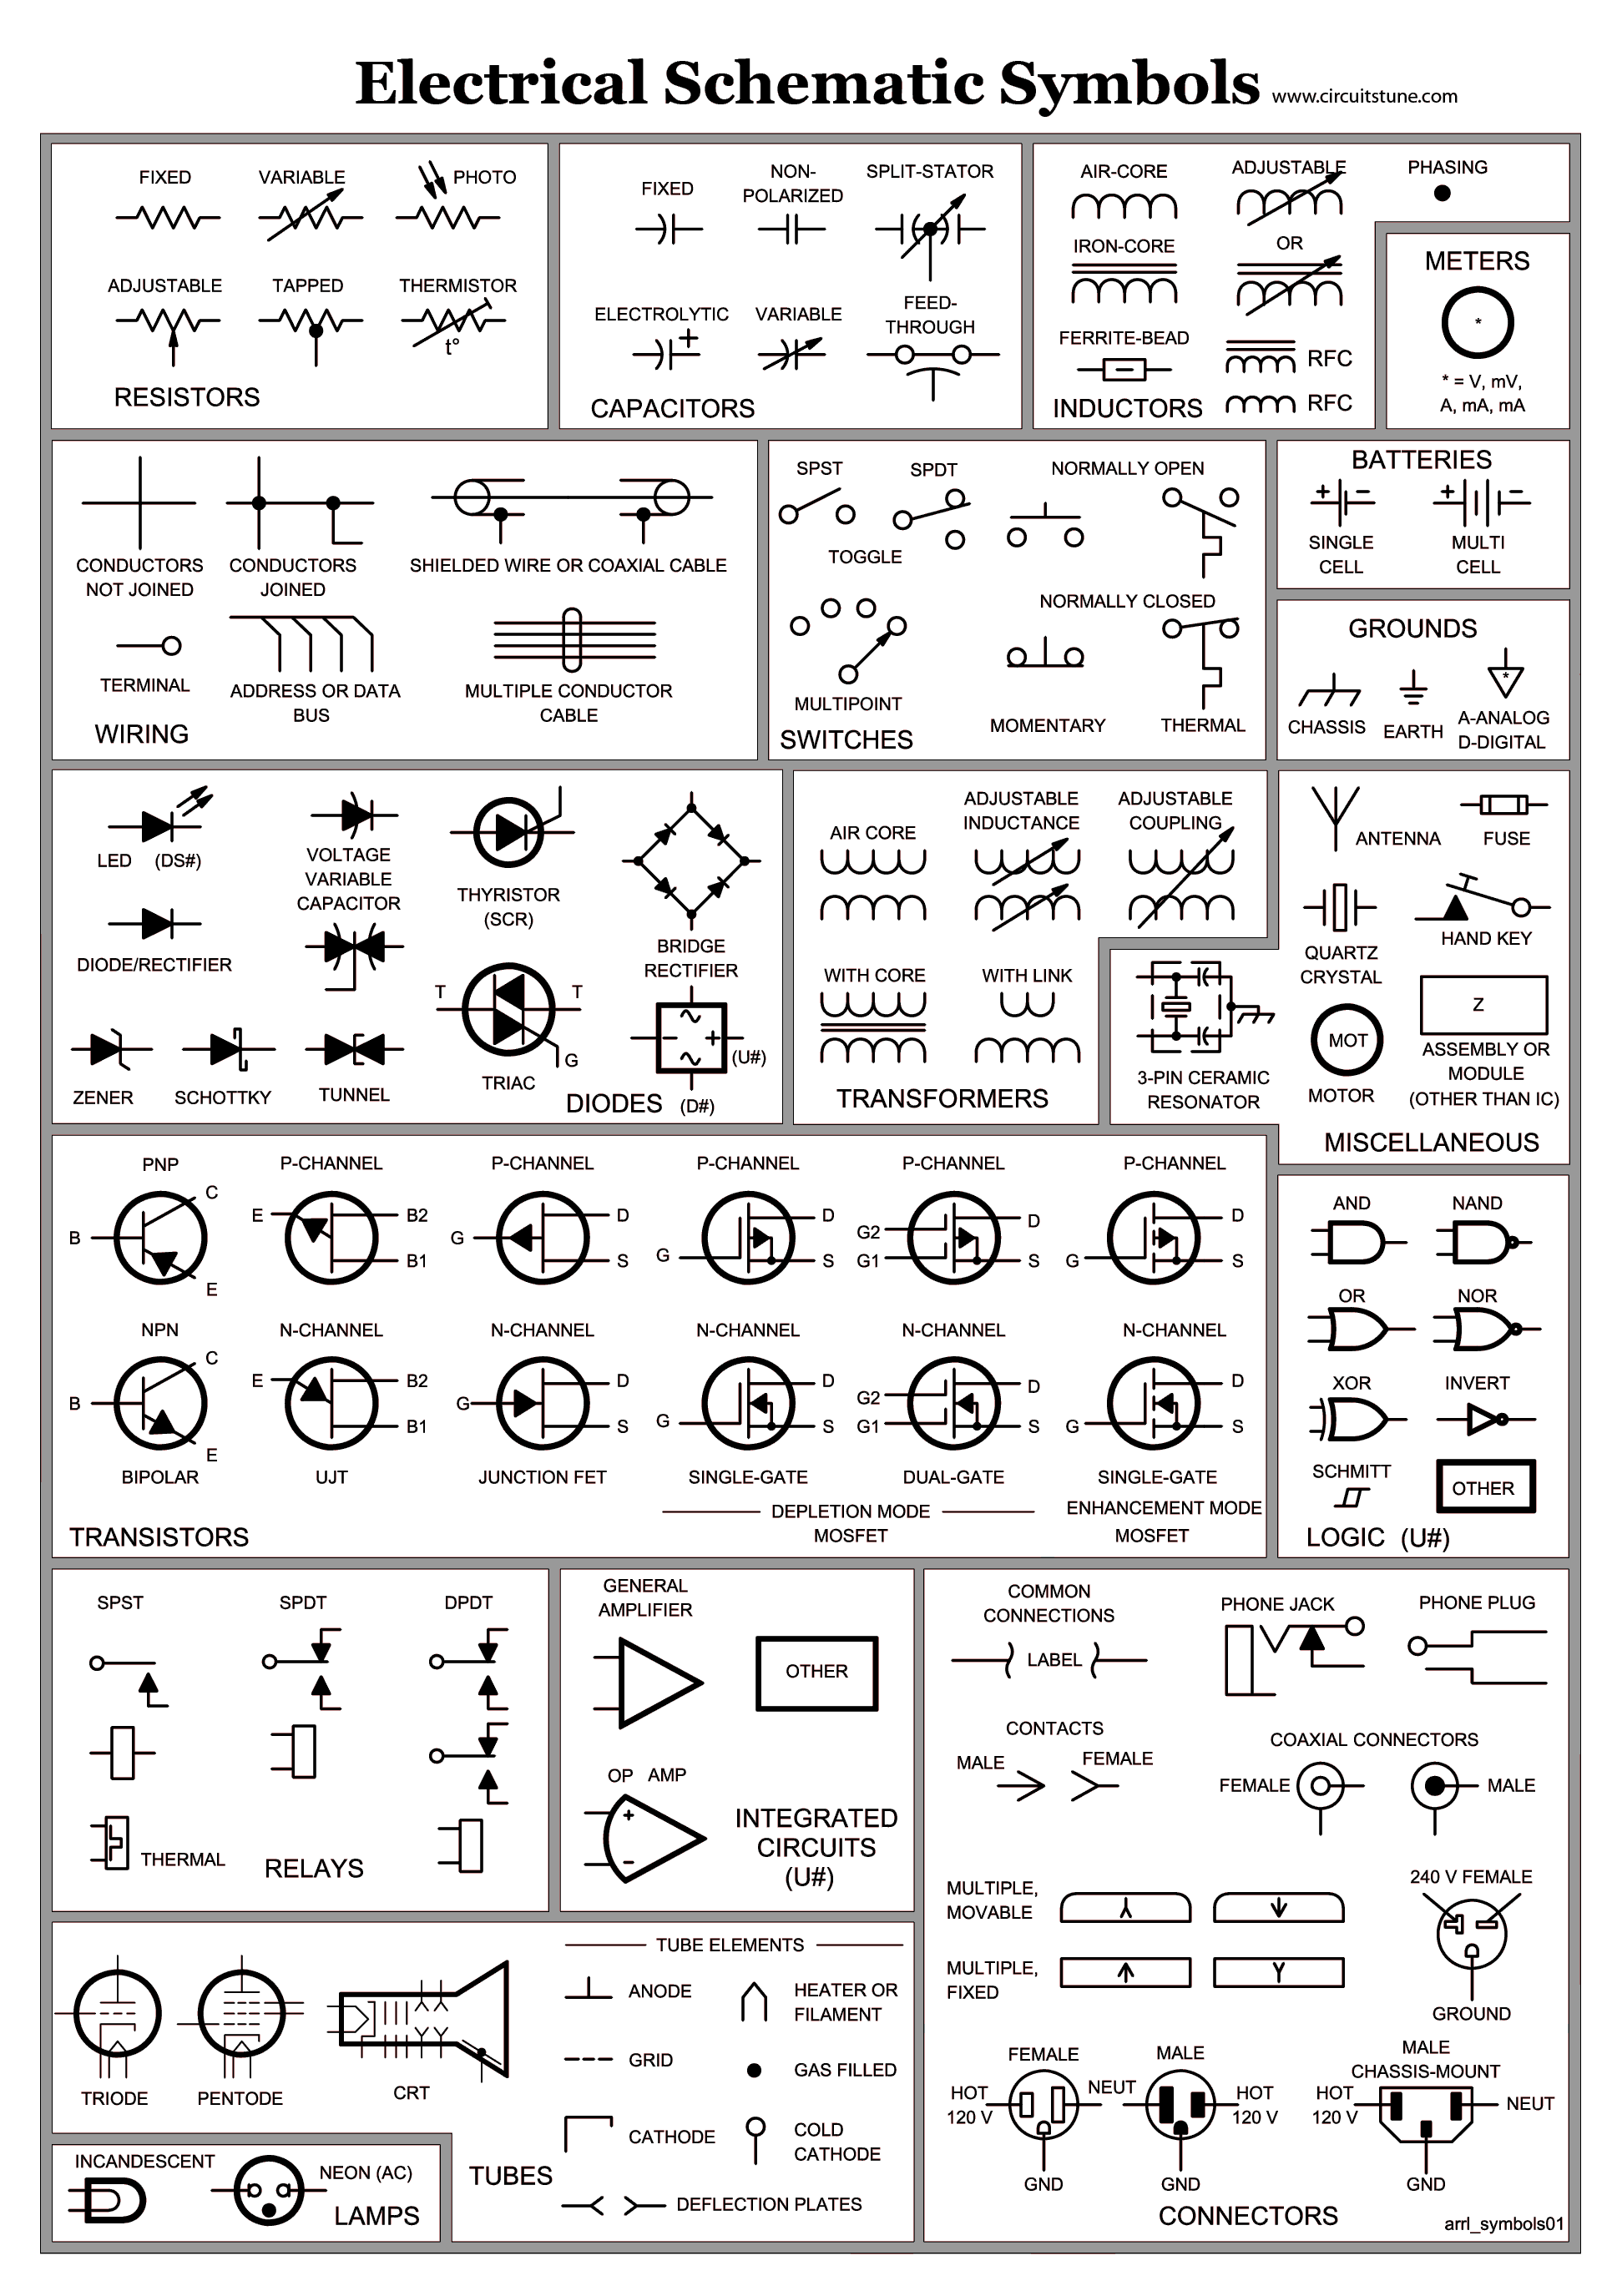 a65d176364692d2ebe913b58a654cfc3 electrical schematic symbols wire diagram symbols automotive electrical symbols house wiring at soozxer.org